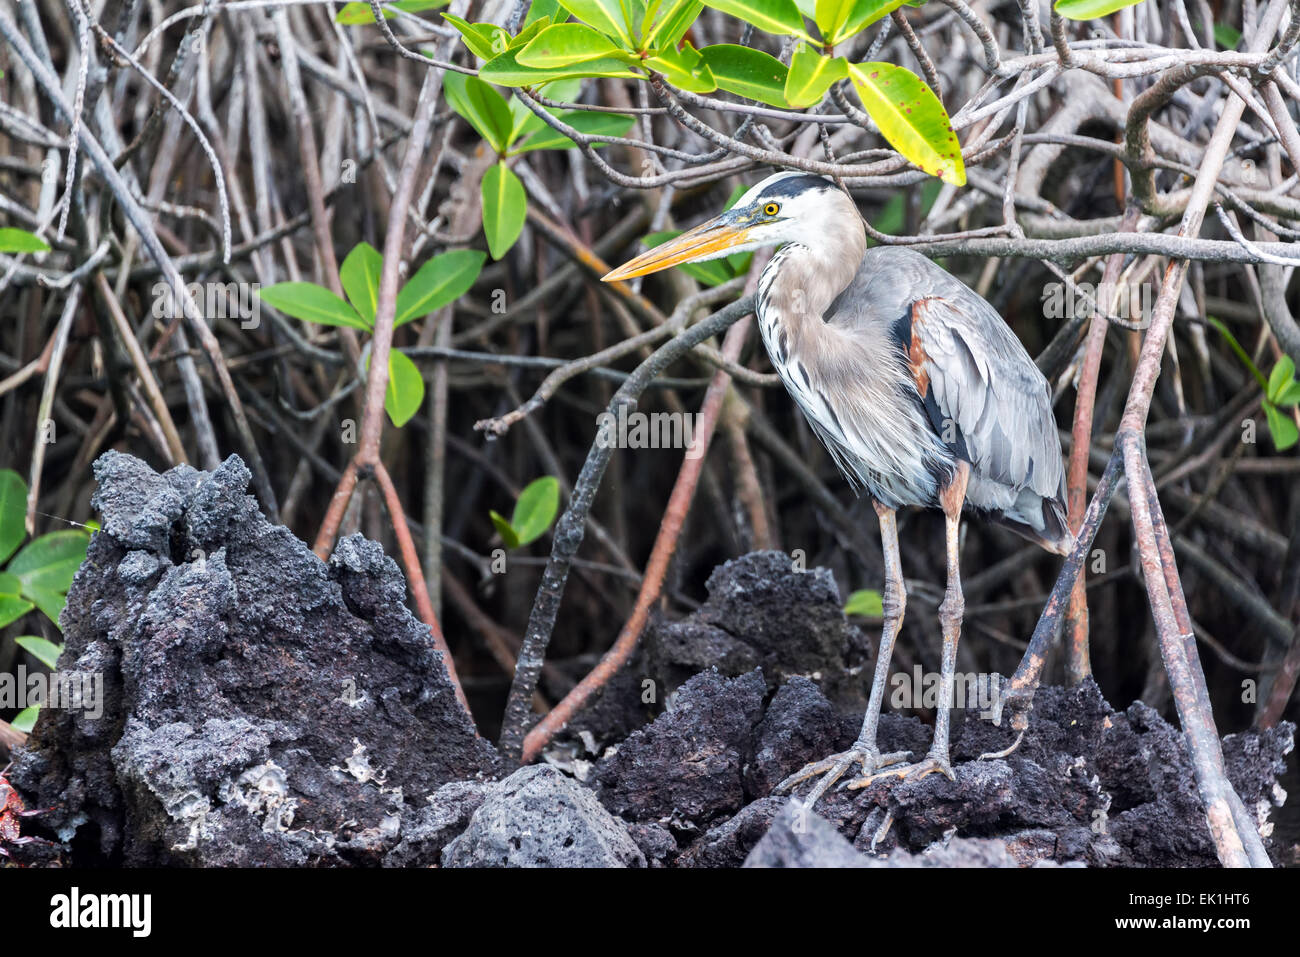 Great Blue Heron standing among a mangrove on Isabela Island in the Galapagos Islands - Stock Image